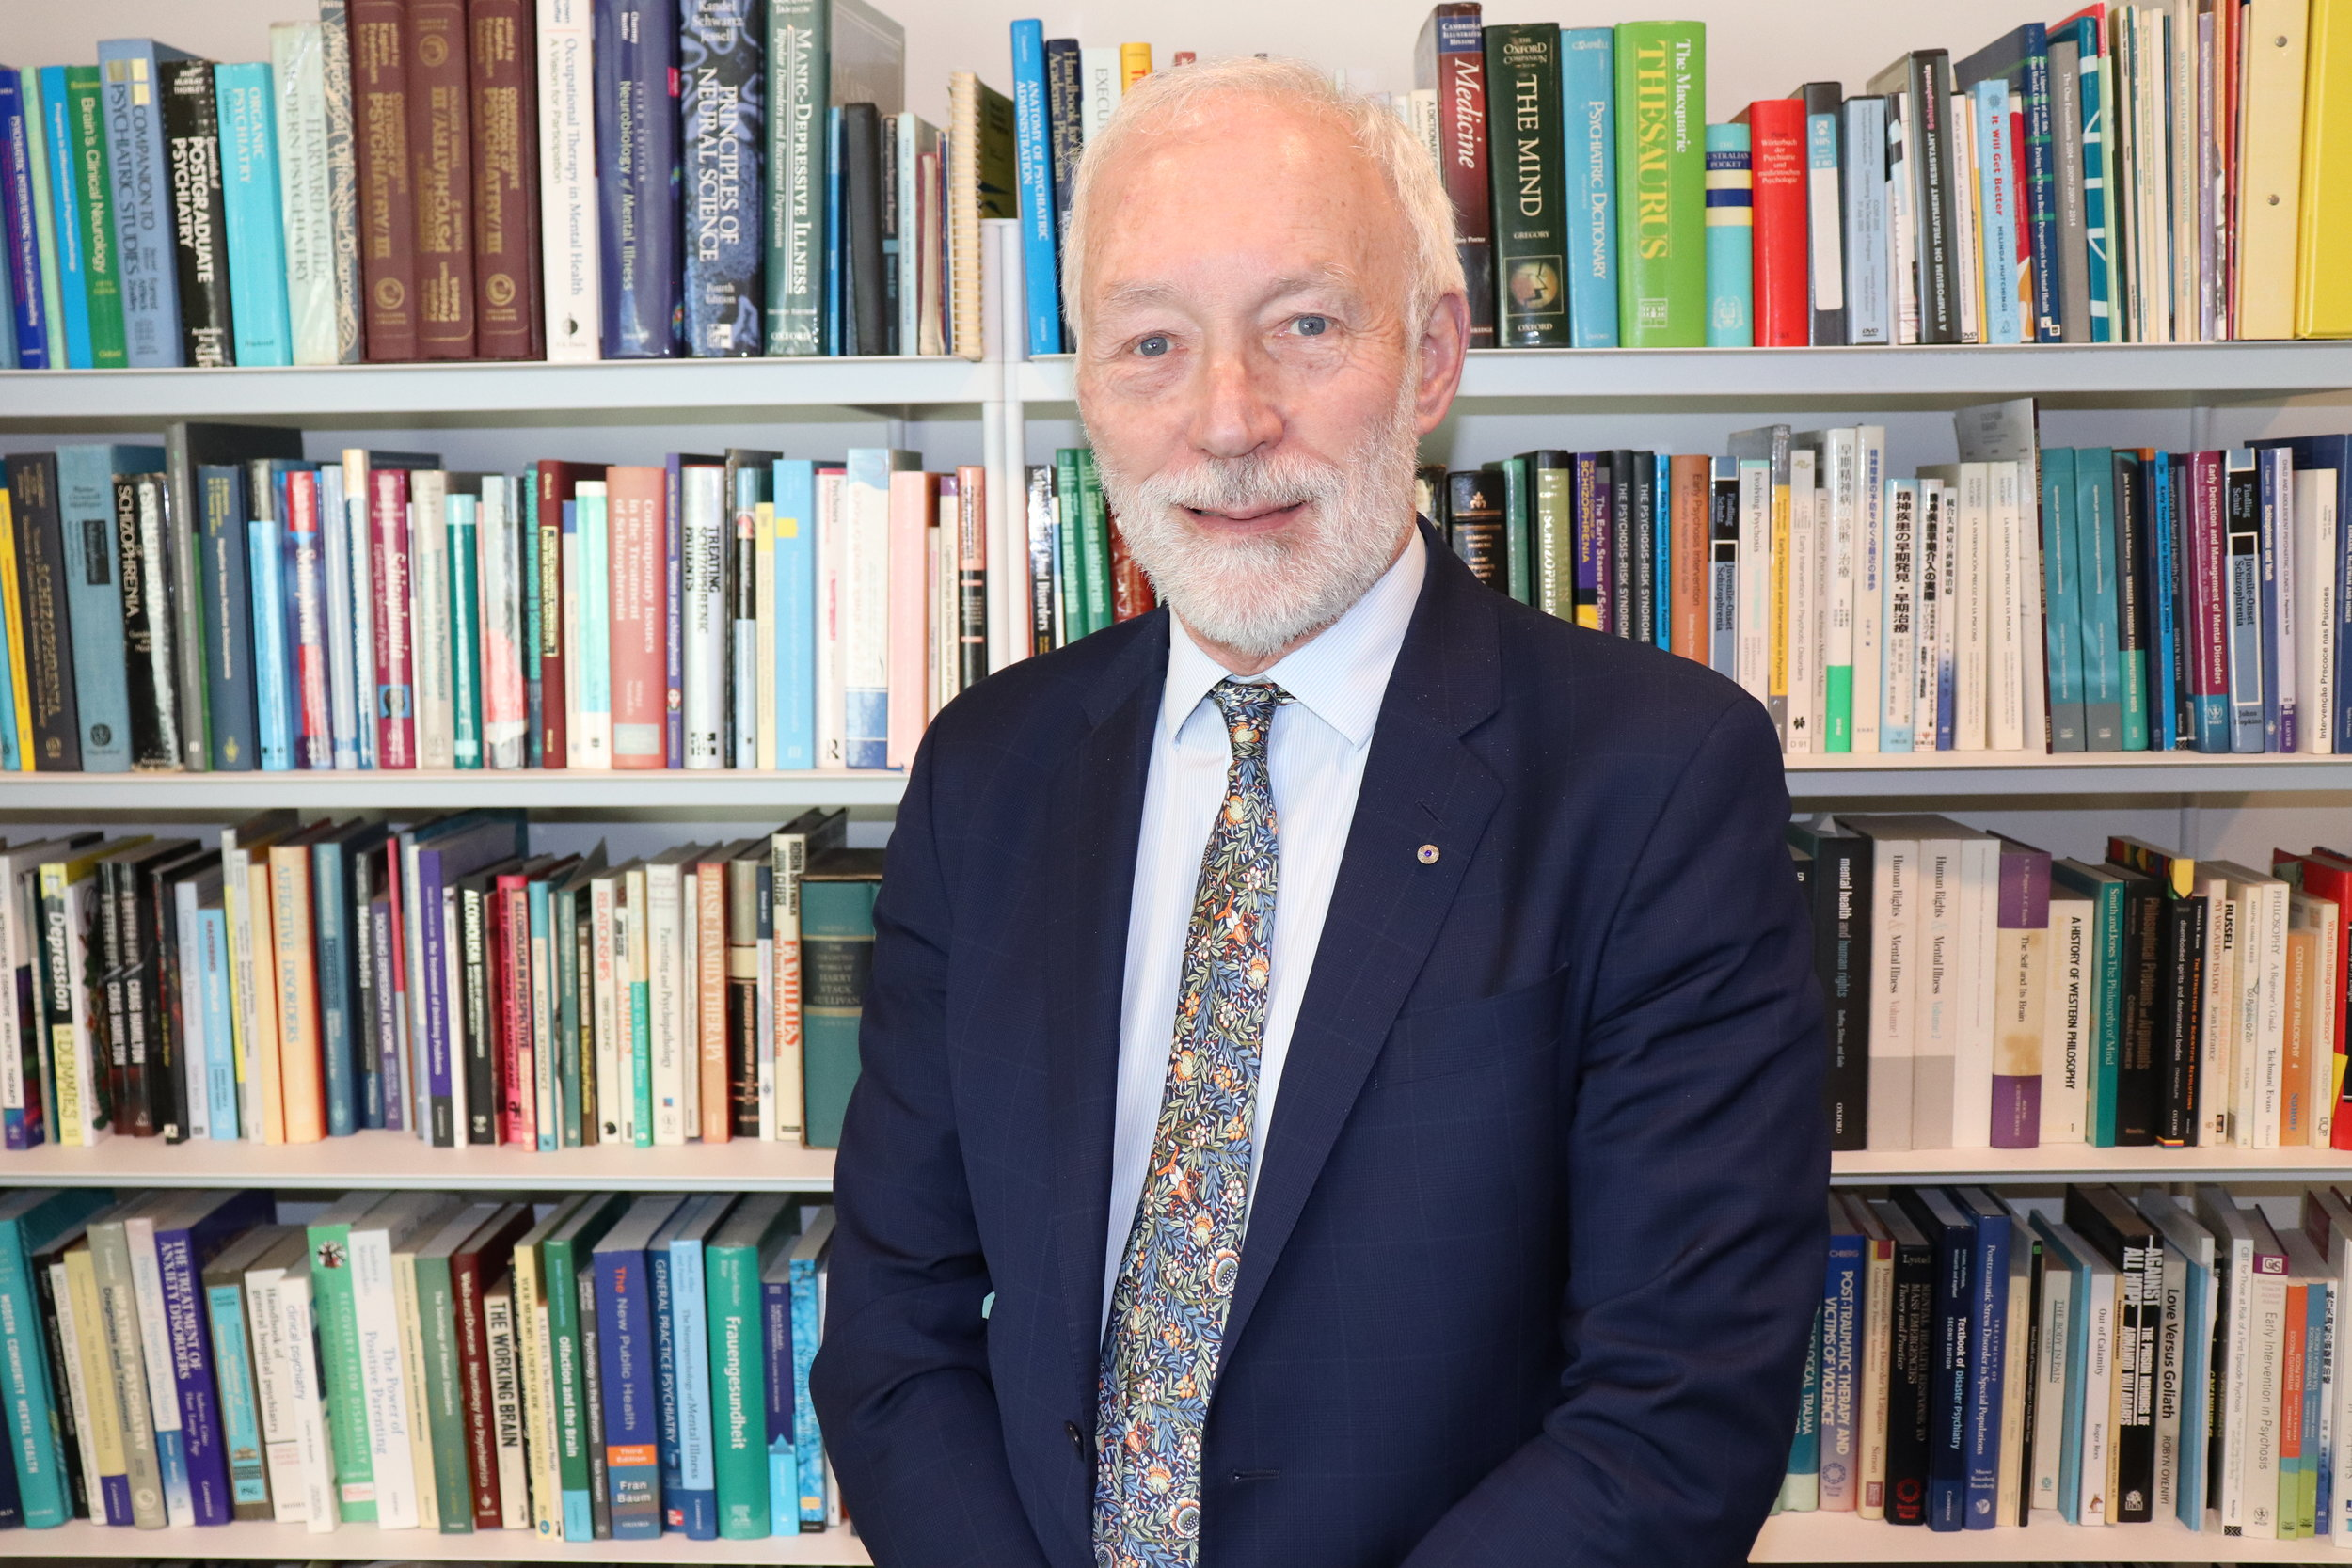 Professor Pat McGorry AO, Melbourne, 19 July 2019